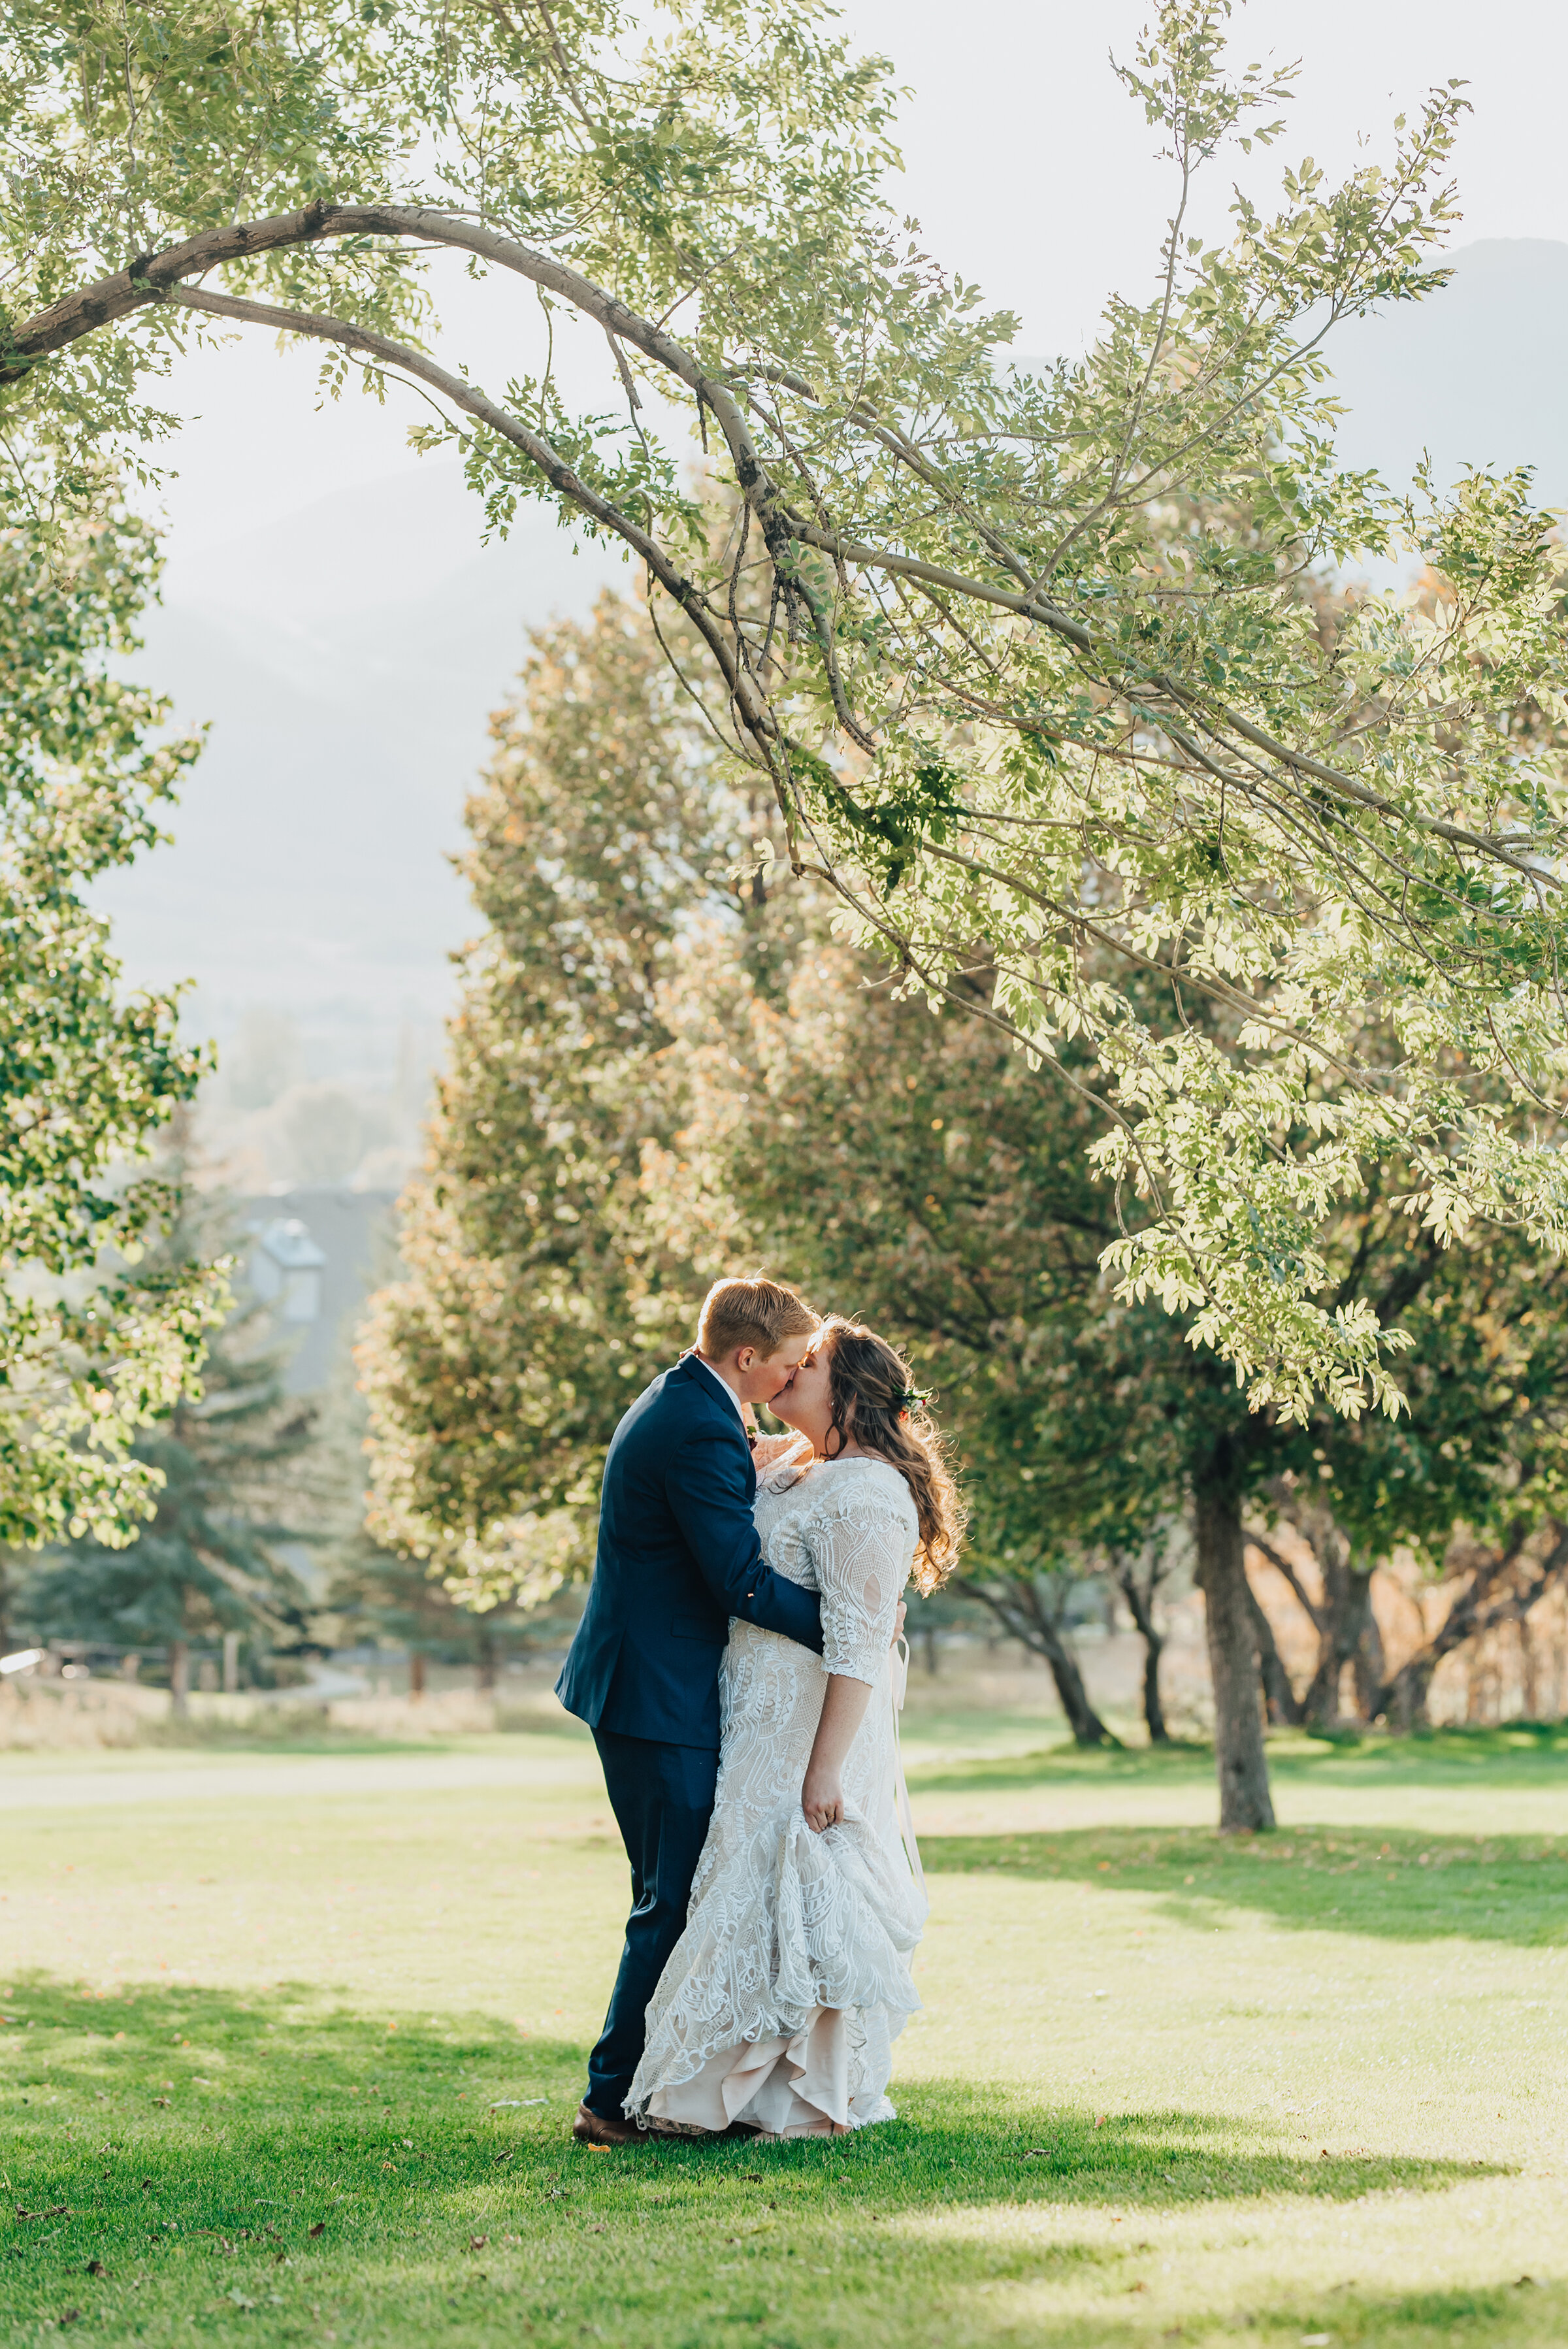 Kristi Alyse Photography captures this special kiss between bride and groom on their wedding day in Logan, Utah. Bride and groom kiss northern Utah wedding day photography inspo white lace wedding dress meaningful moments kiss husband wife logan Utah bride #weddinginspo #loganutah #brideandgroom #utahbride #utahweddingphotographer #meaningfulmoment #weddingphotography #northernutahwedding #weddinghairstyles #weddingday #bridals